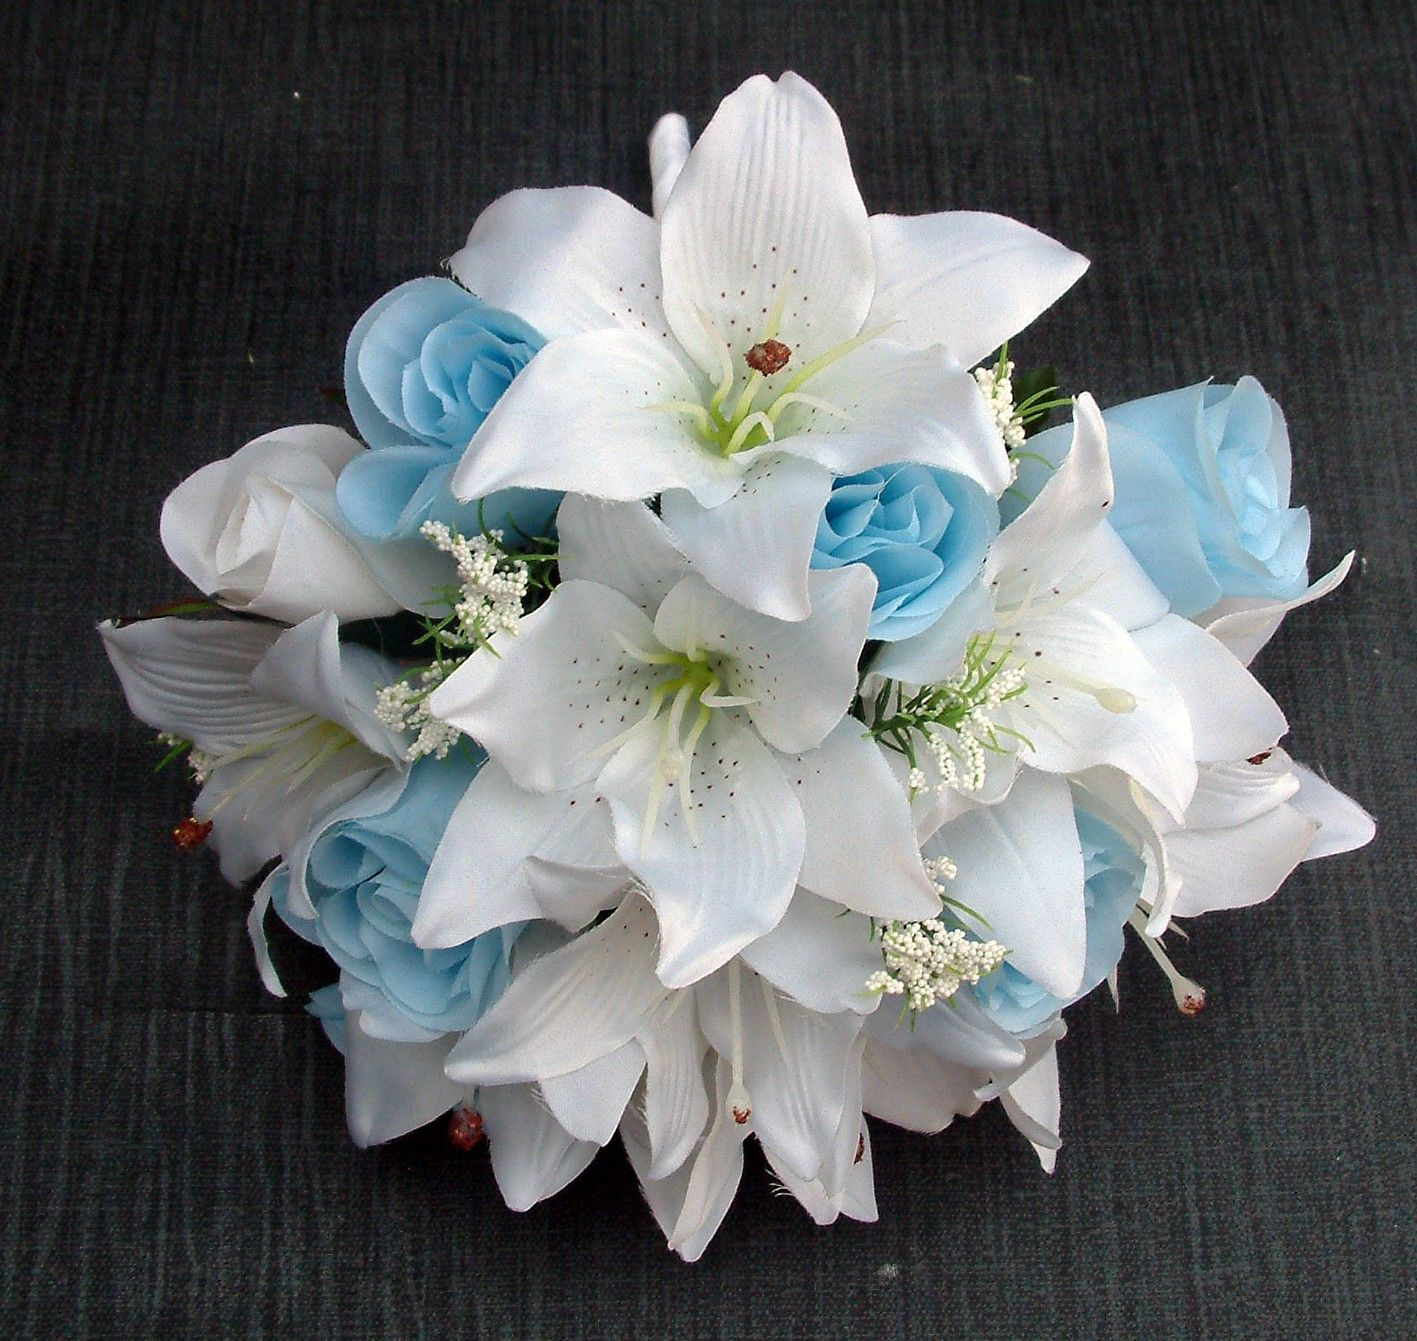 Blue And White Flowers For Weddings: White And Blue Lily Wedding Bouquets